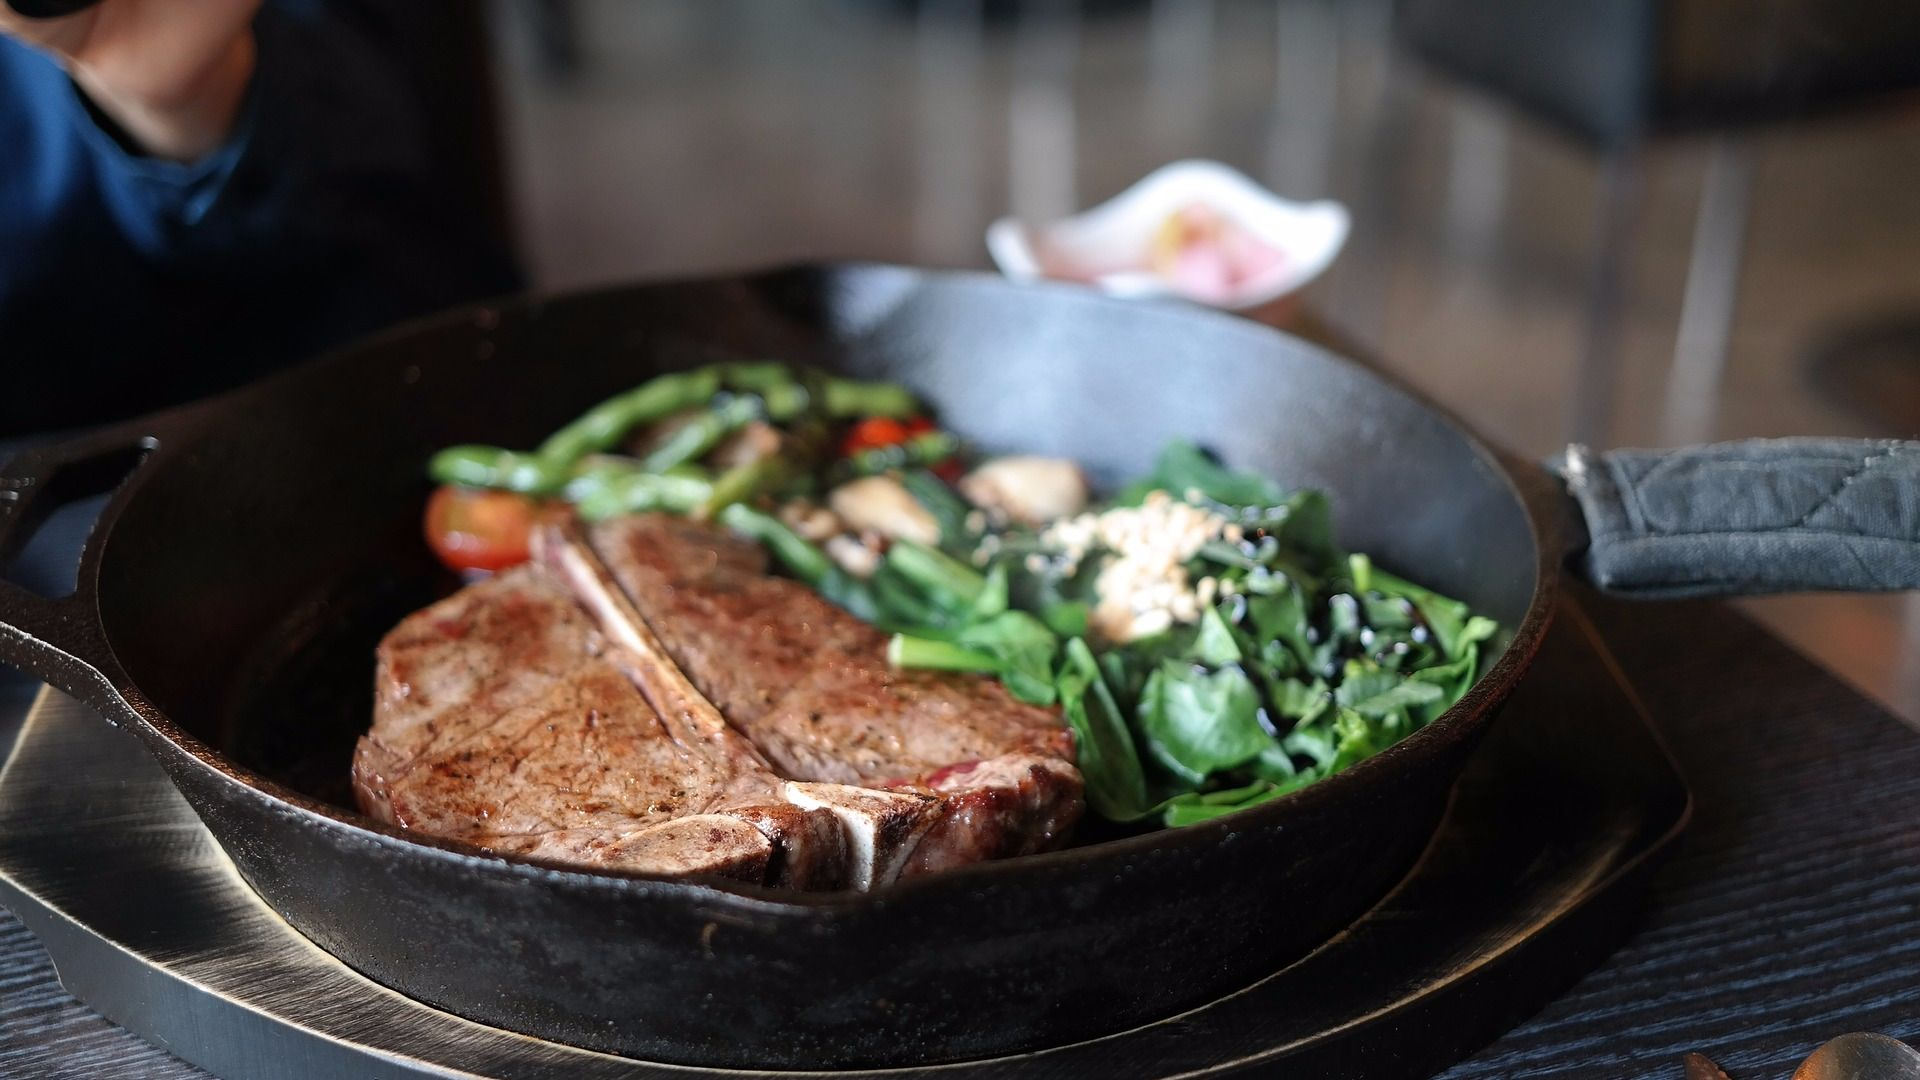 How to cook a steak steak in a pan